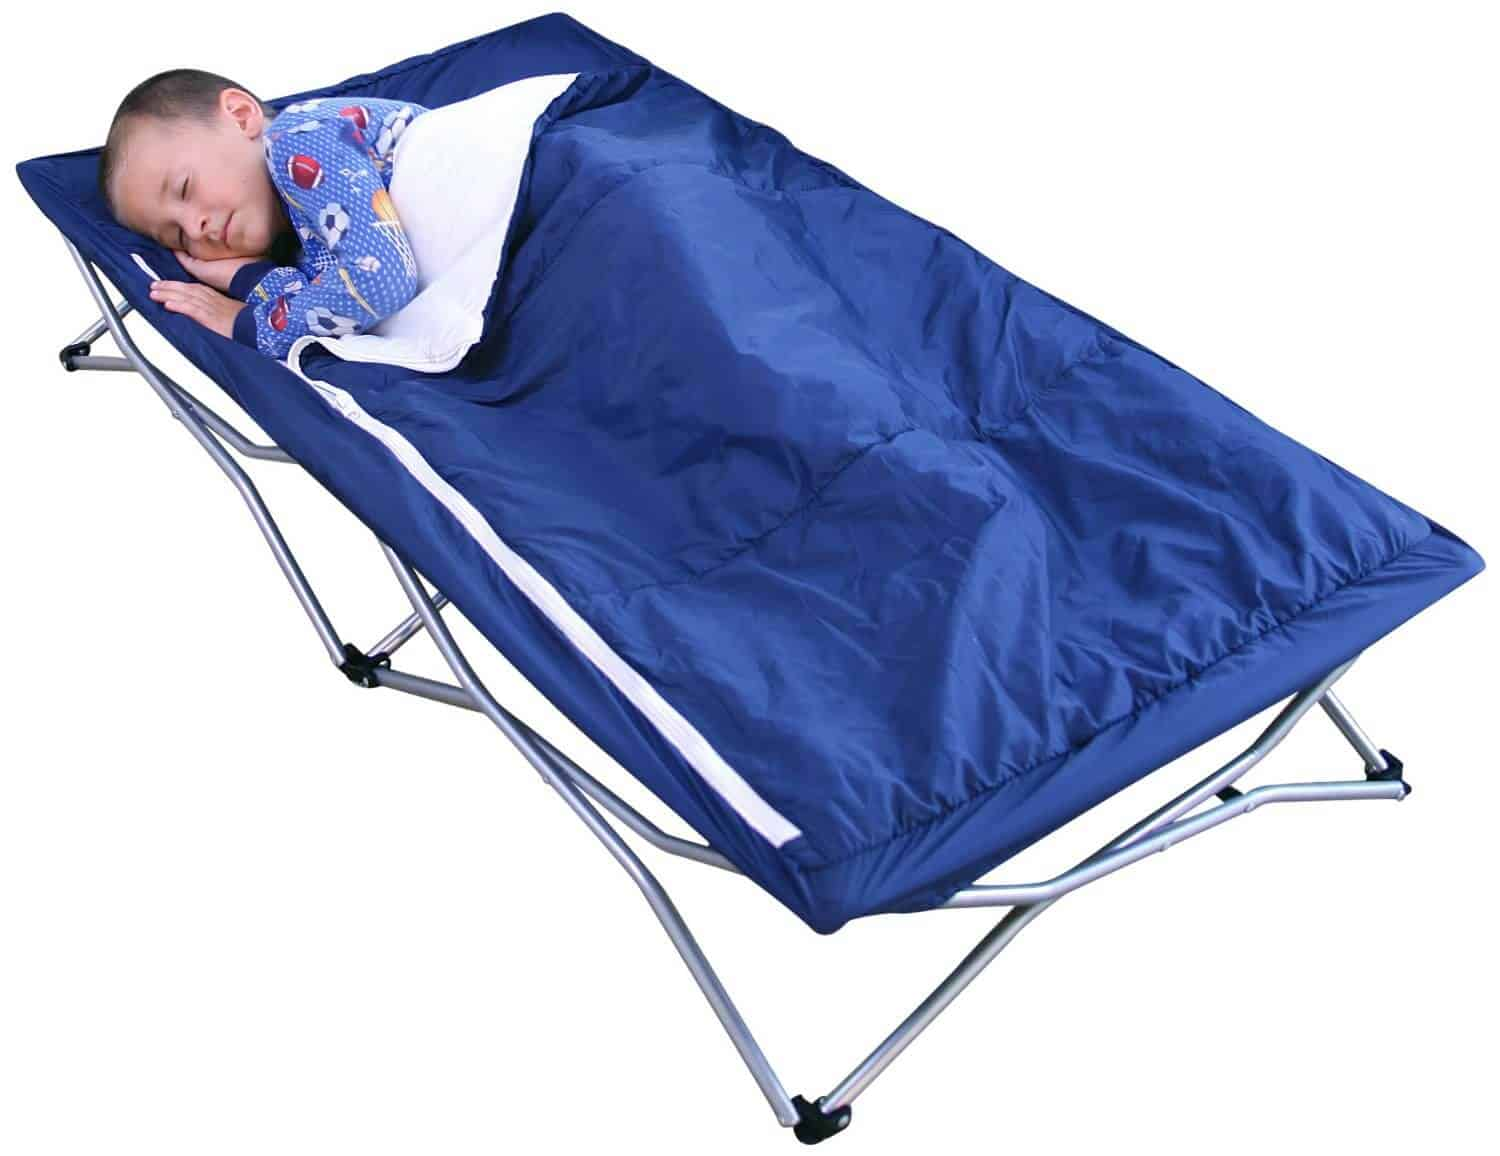 6 Travel Beds For Toddlers Kids